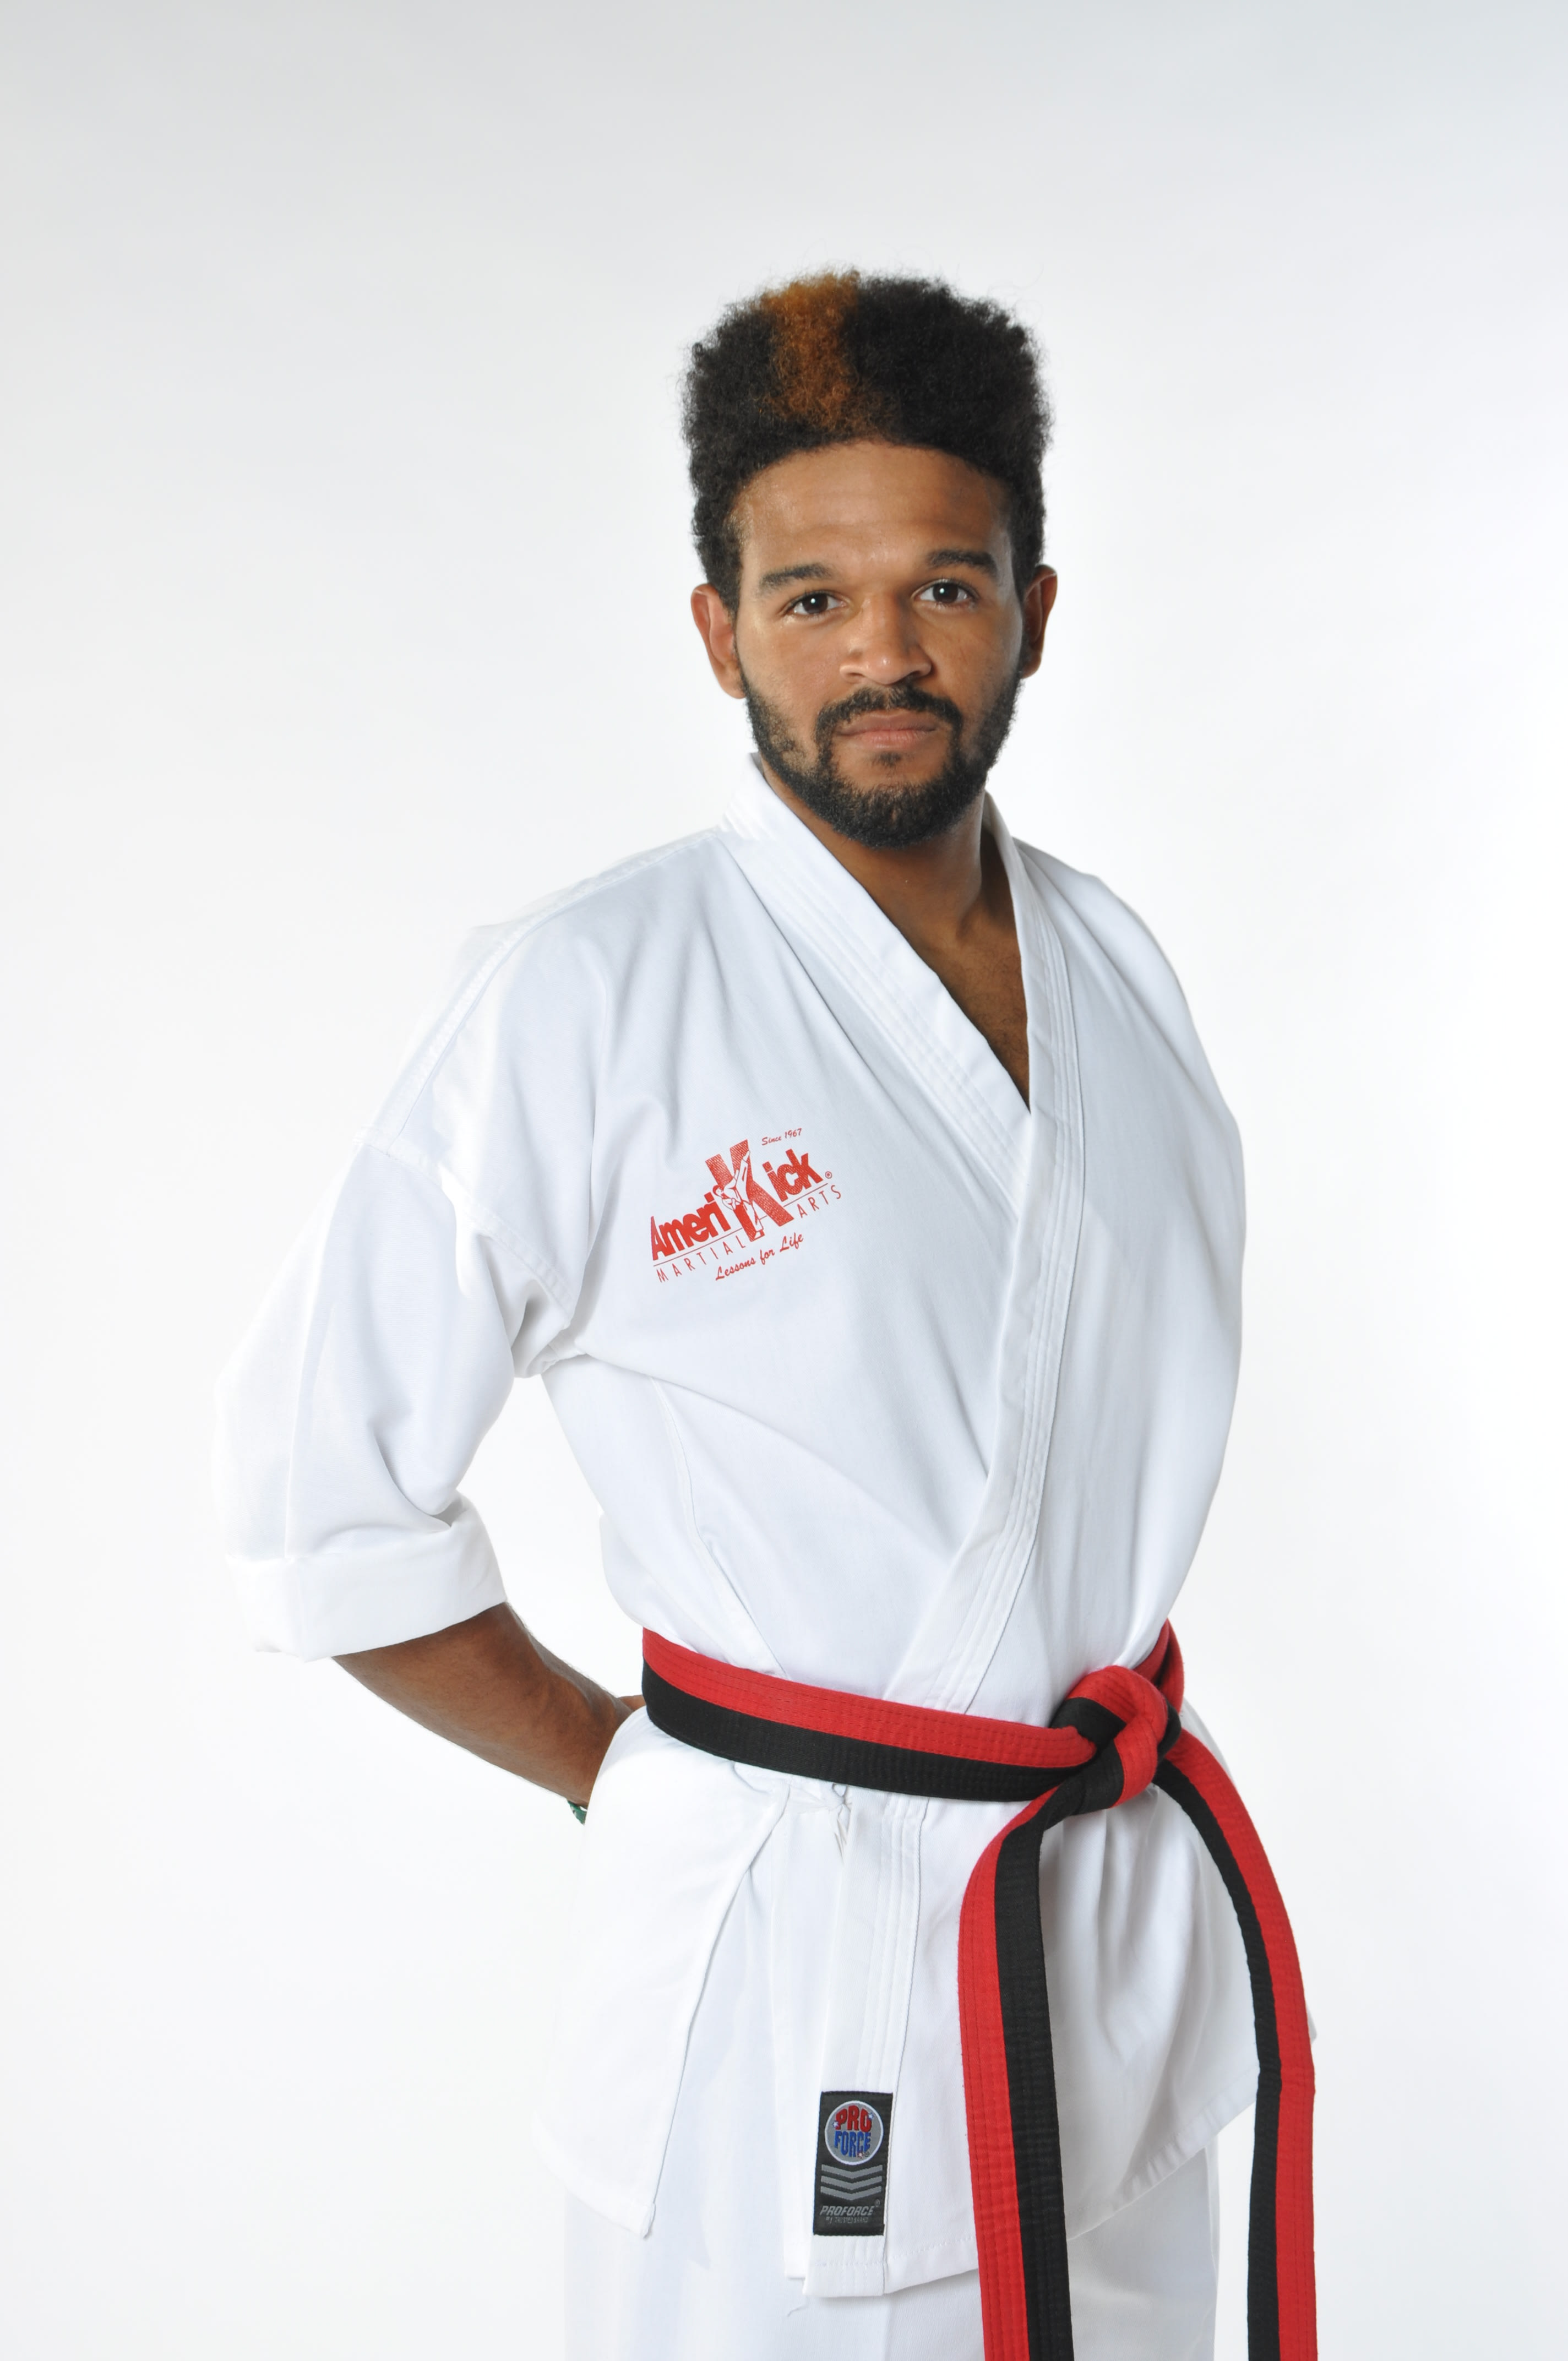 Nate DeSantana in Philadelphia - Amerikick Martial Arts Northeast Philly